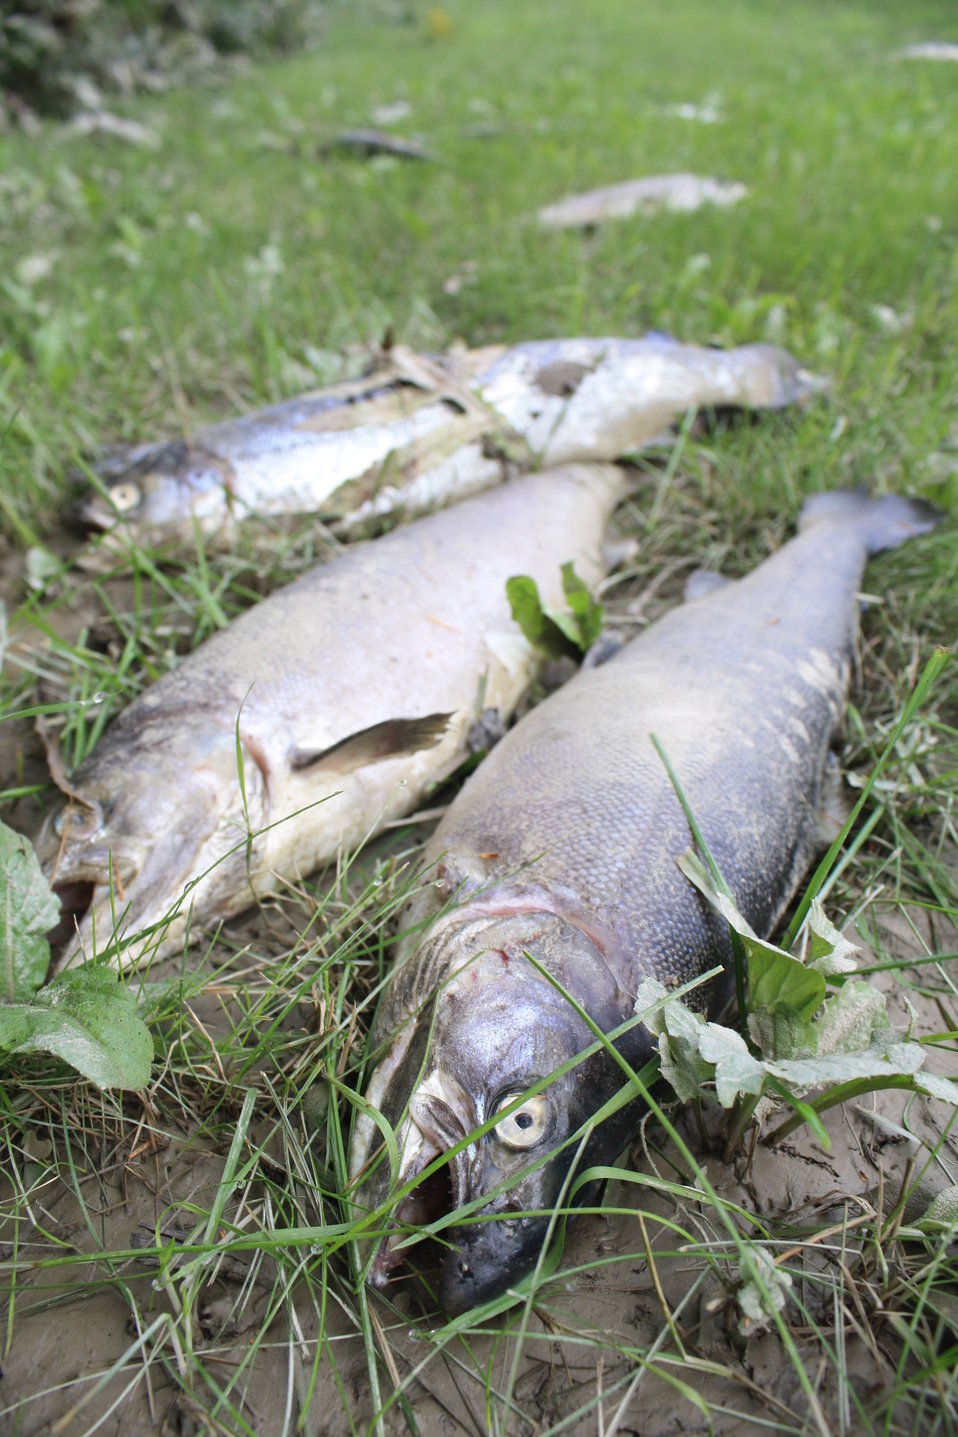 Dead fish after Hurricane Irene flood event